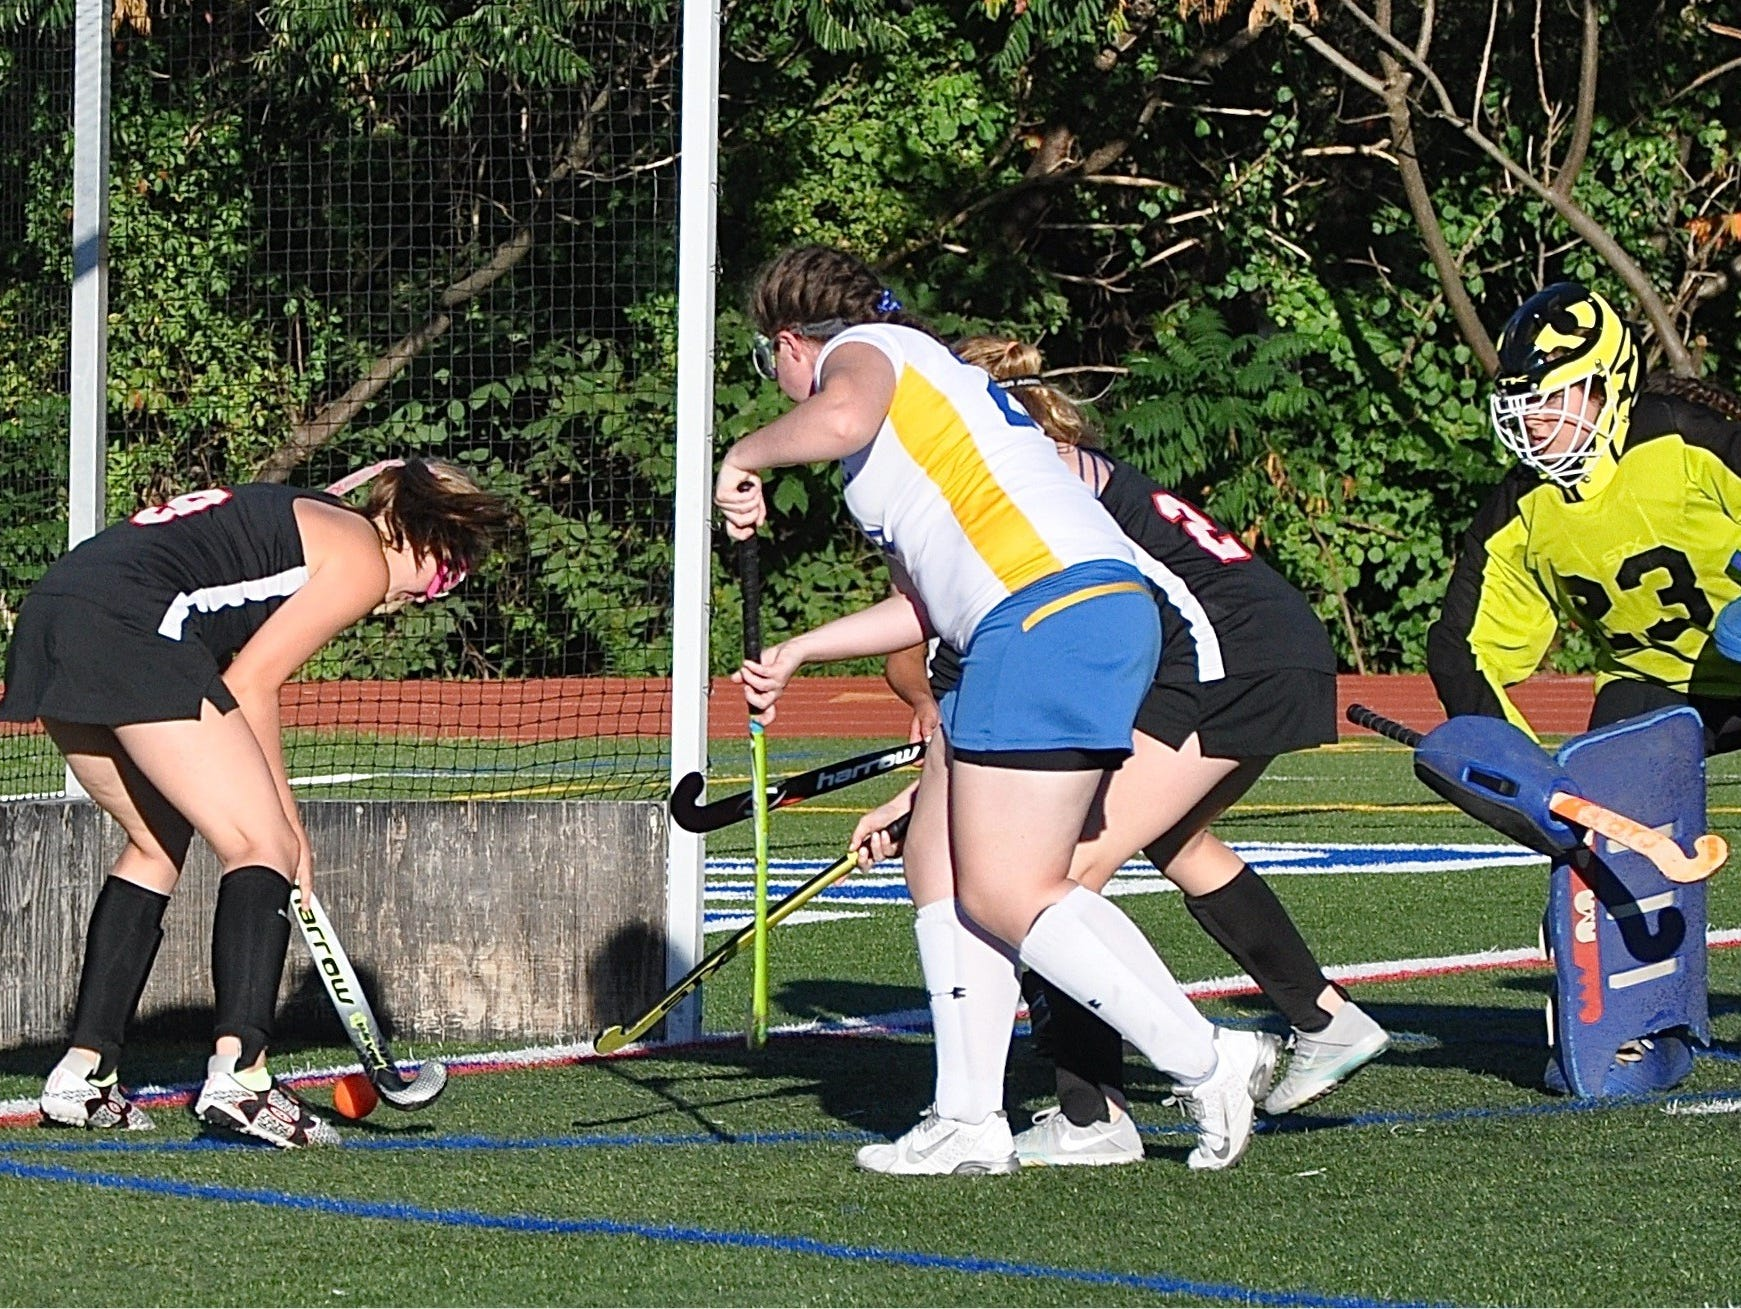 Kate Stevens gets behind Mahopac's D to score off a Fusine Guvaert reverse assist in Rye's 5-1 win. Photo from Sep 12, 2016